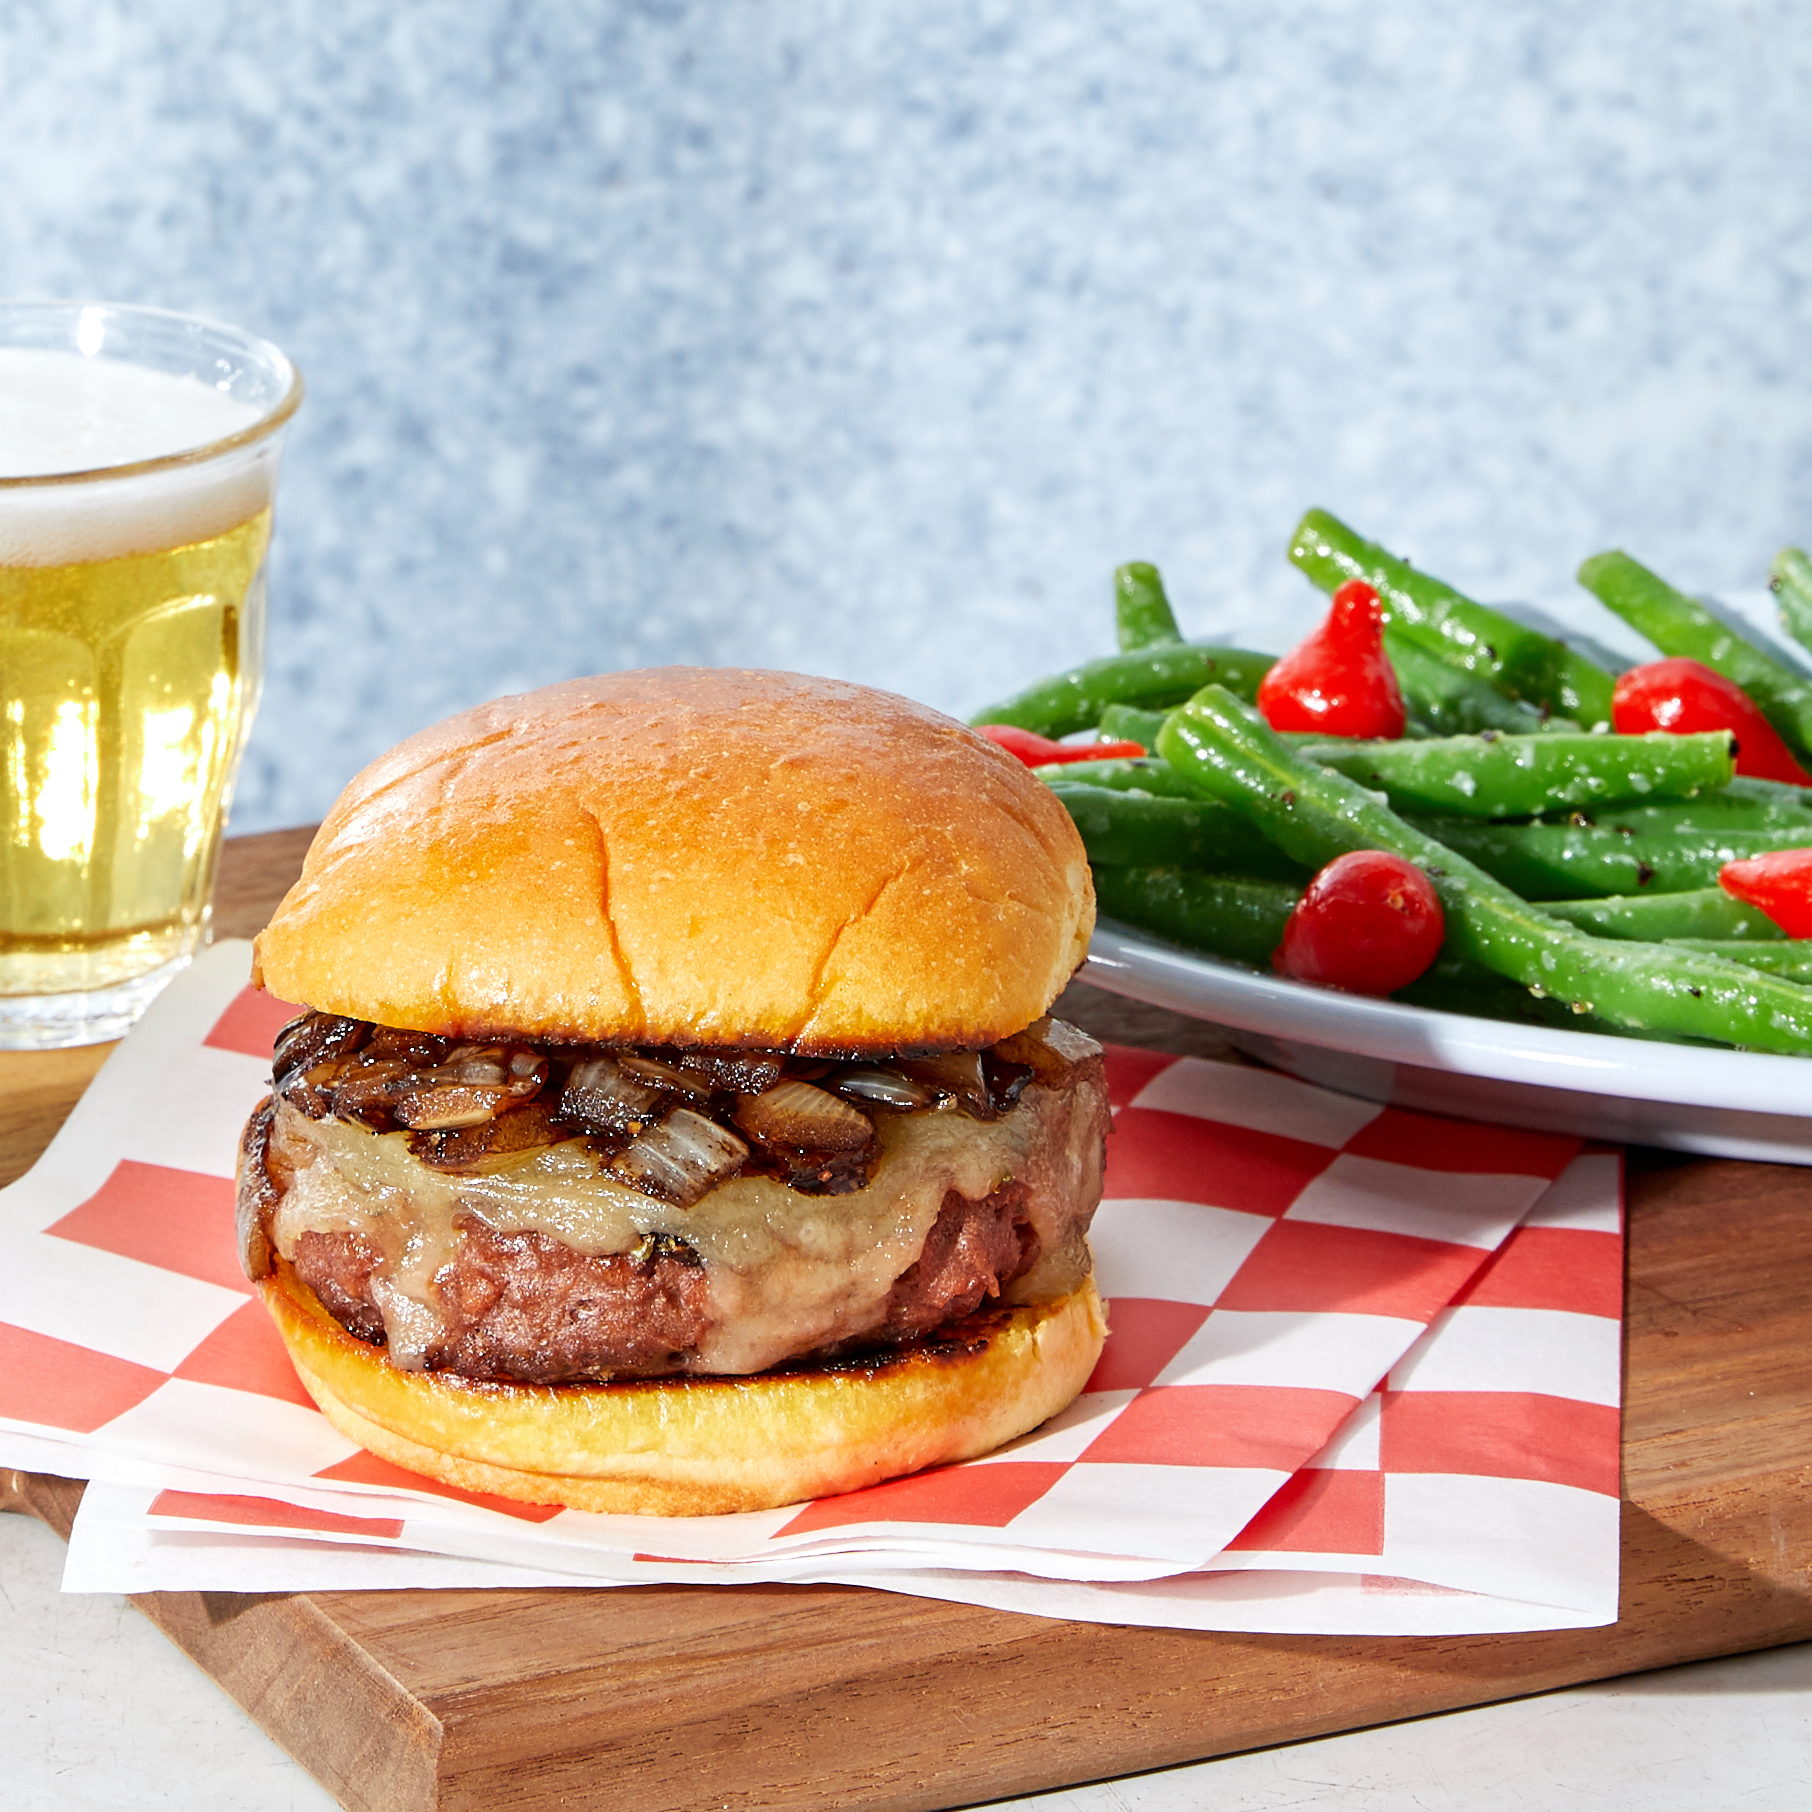 Caramelized Onion & Cheddar Beyond Burgers™ - with Garlic Green Beans